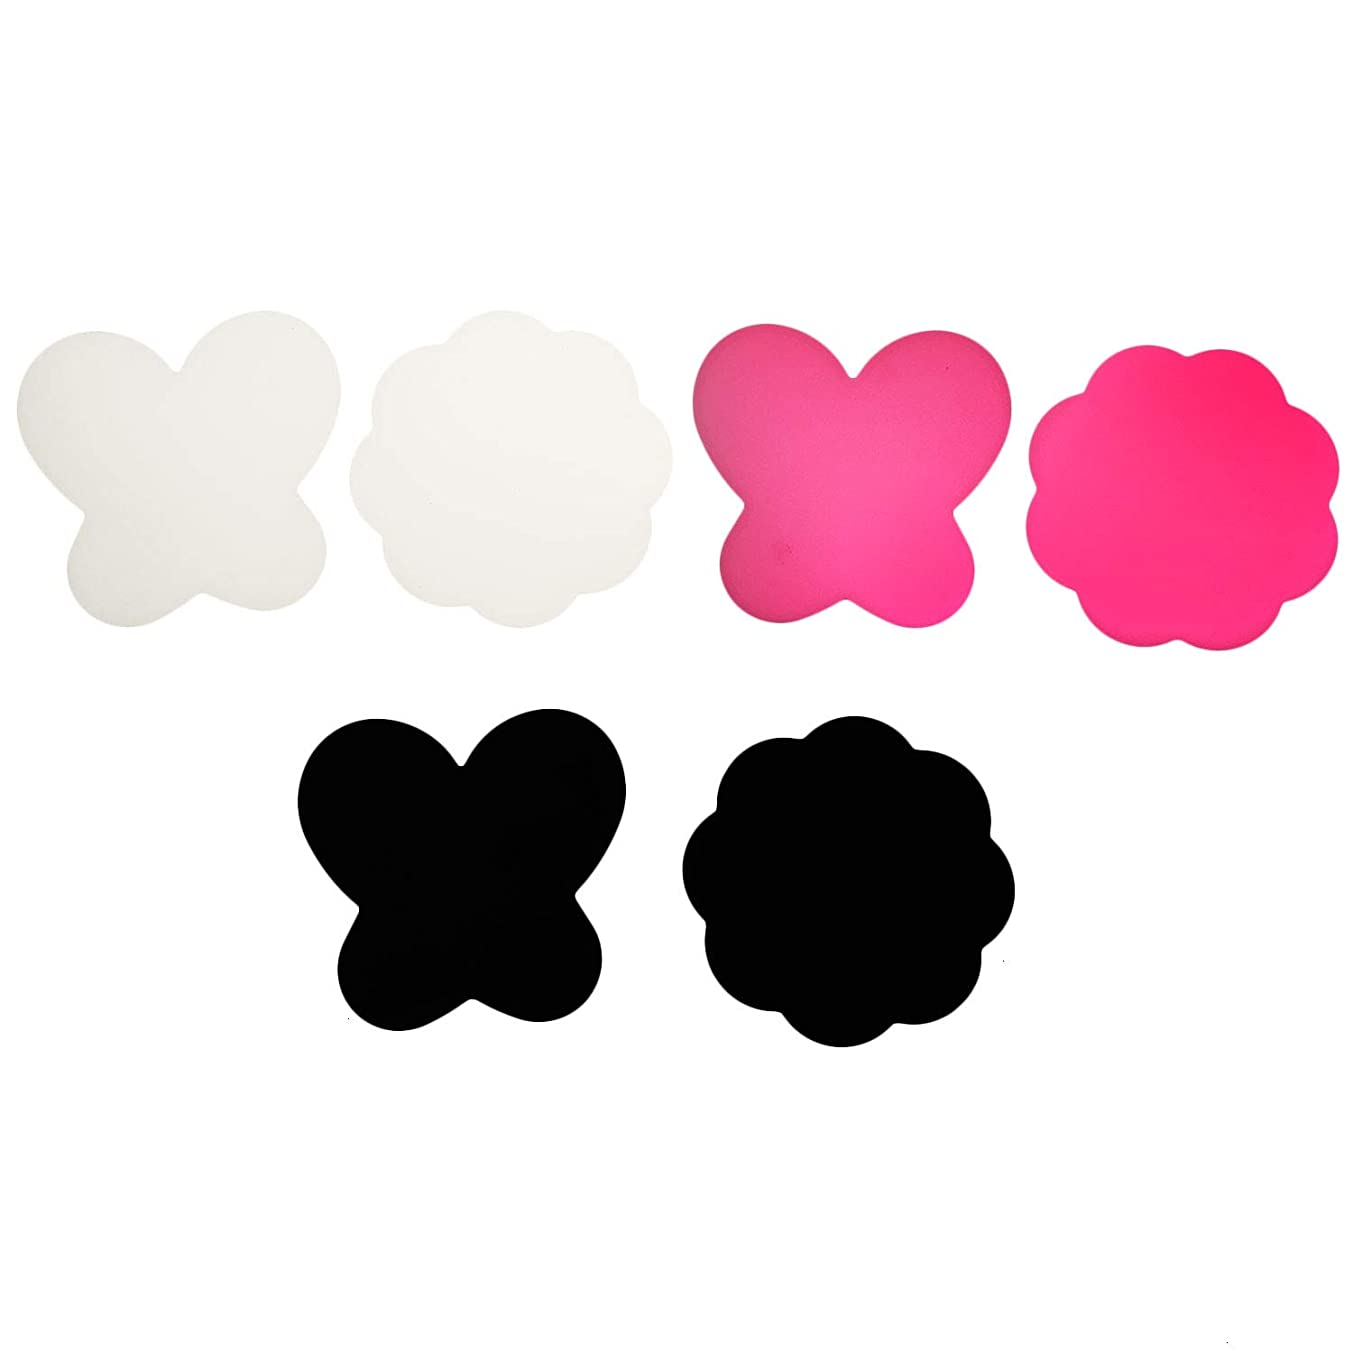 Monrocco 6 pcs Silicone Nail Art Palette Mat Mixing Paint Palette Nail Art Stamping Pad